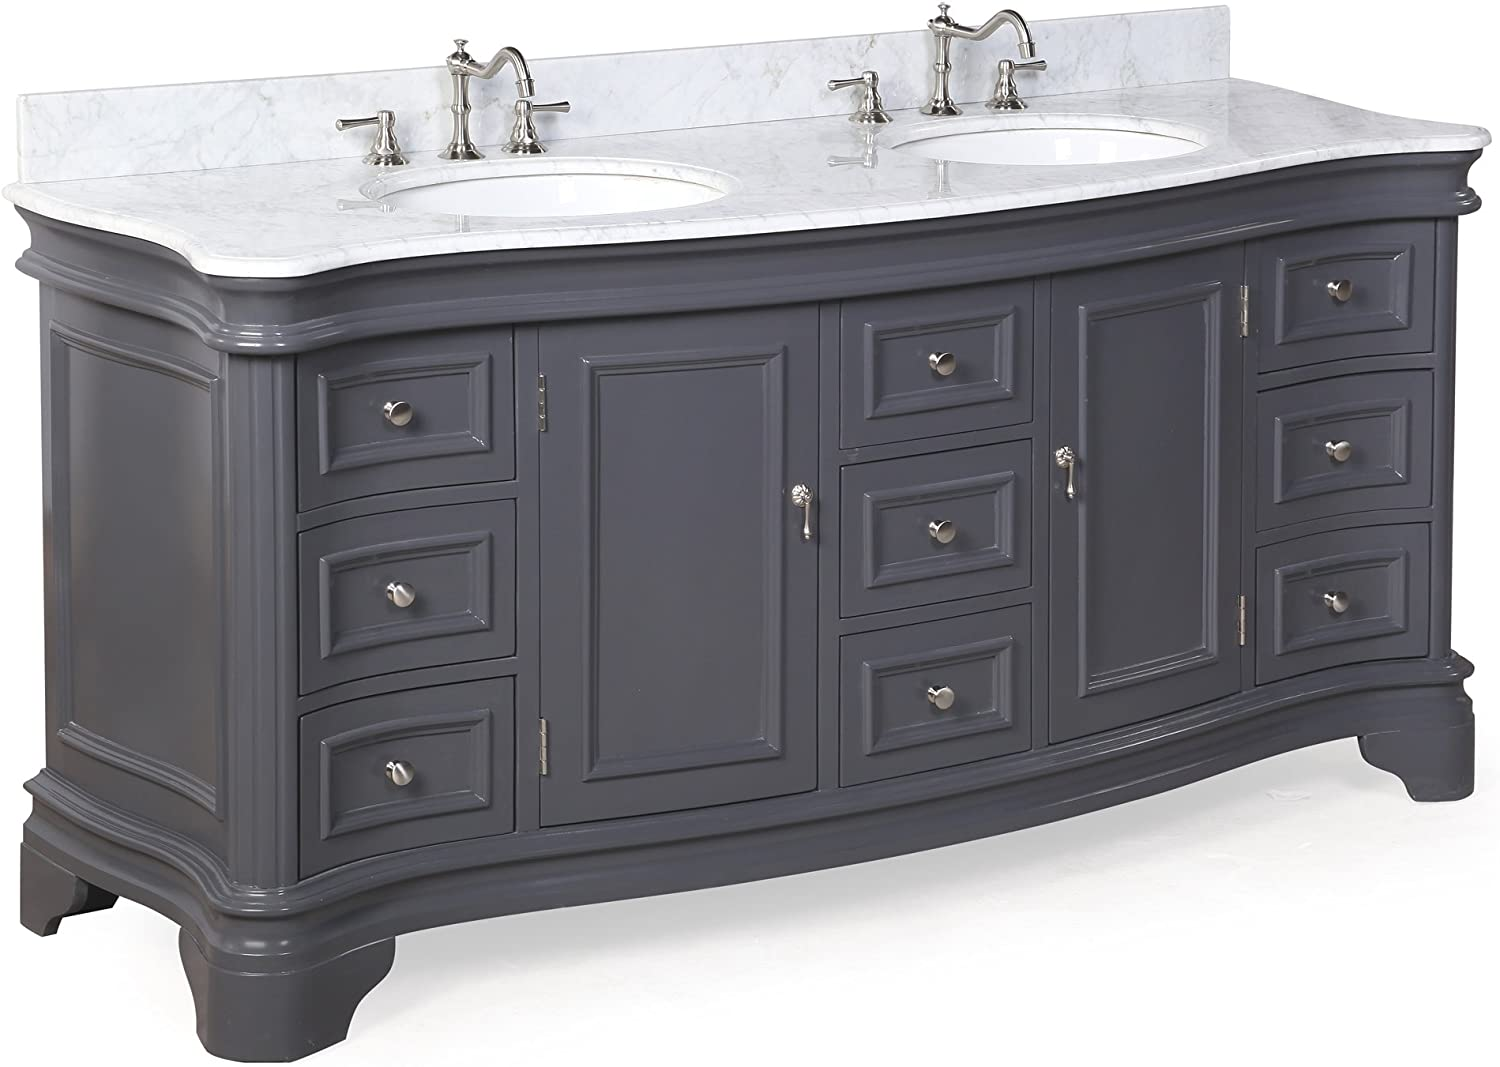 Katherine 72 Inch Double Bathroom Vanity Carrara Charcoal Gray Includes Charcoal Gray Cabinet With Authentic Italian Carrara Marble Countertop And White Ceramic Sinks Furniture Decor